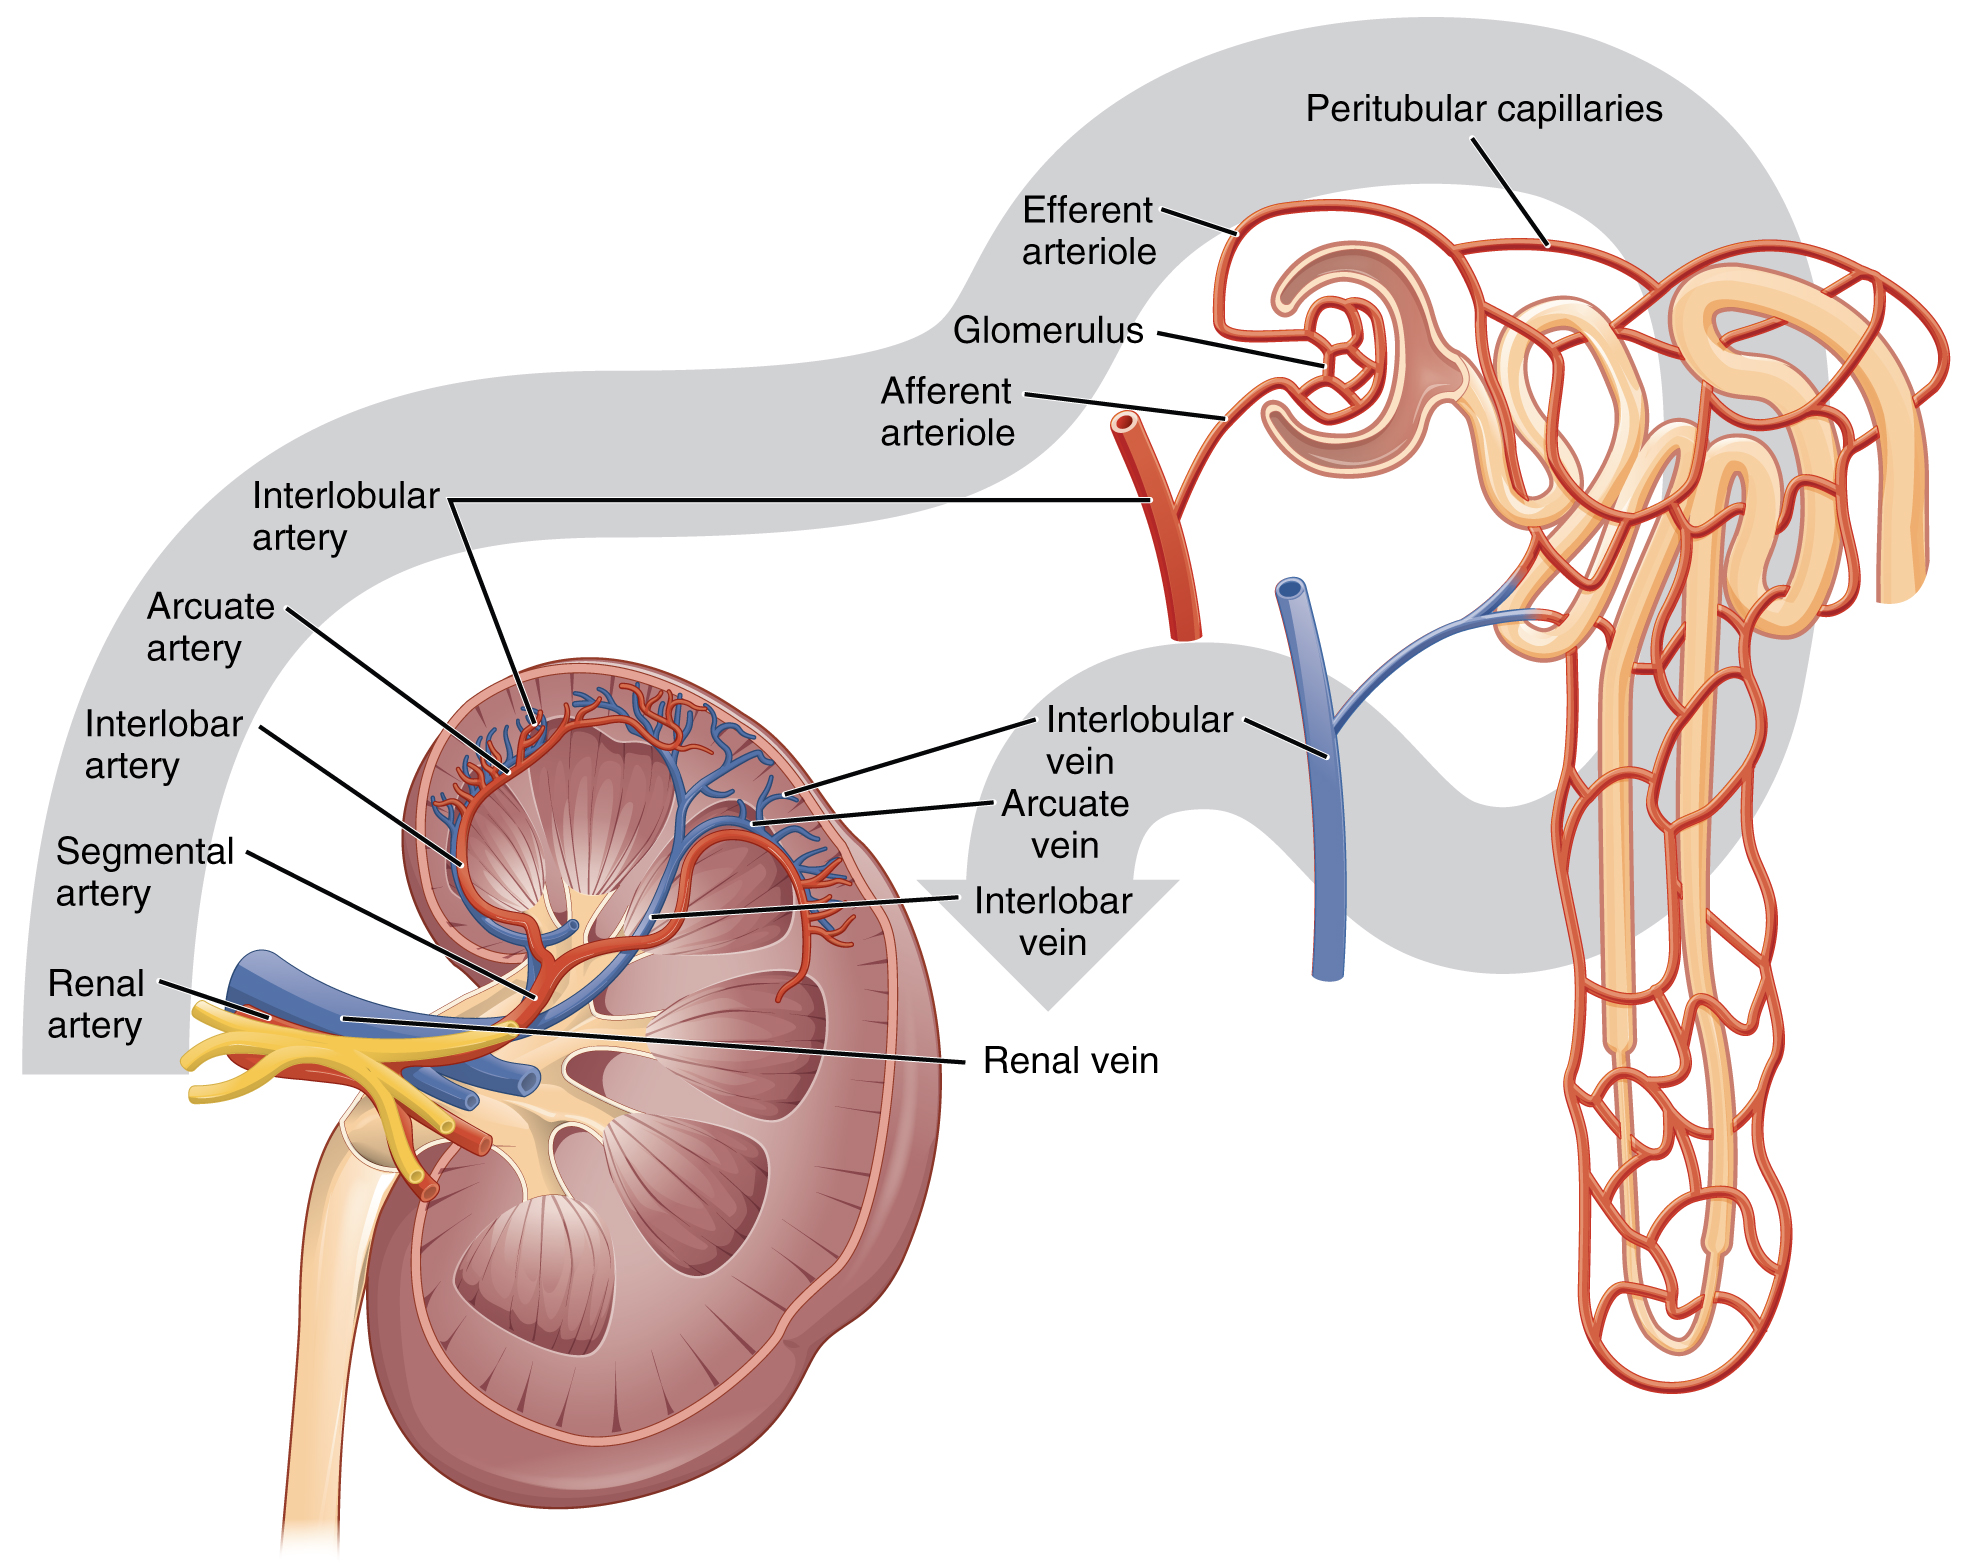 Gross Anatomy of the Kidney - Anatomy & Physiology - OpenStax CNX